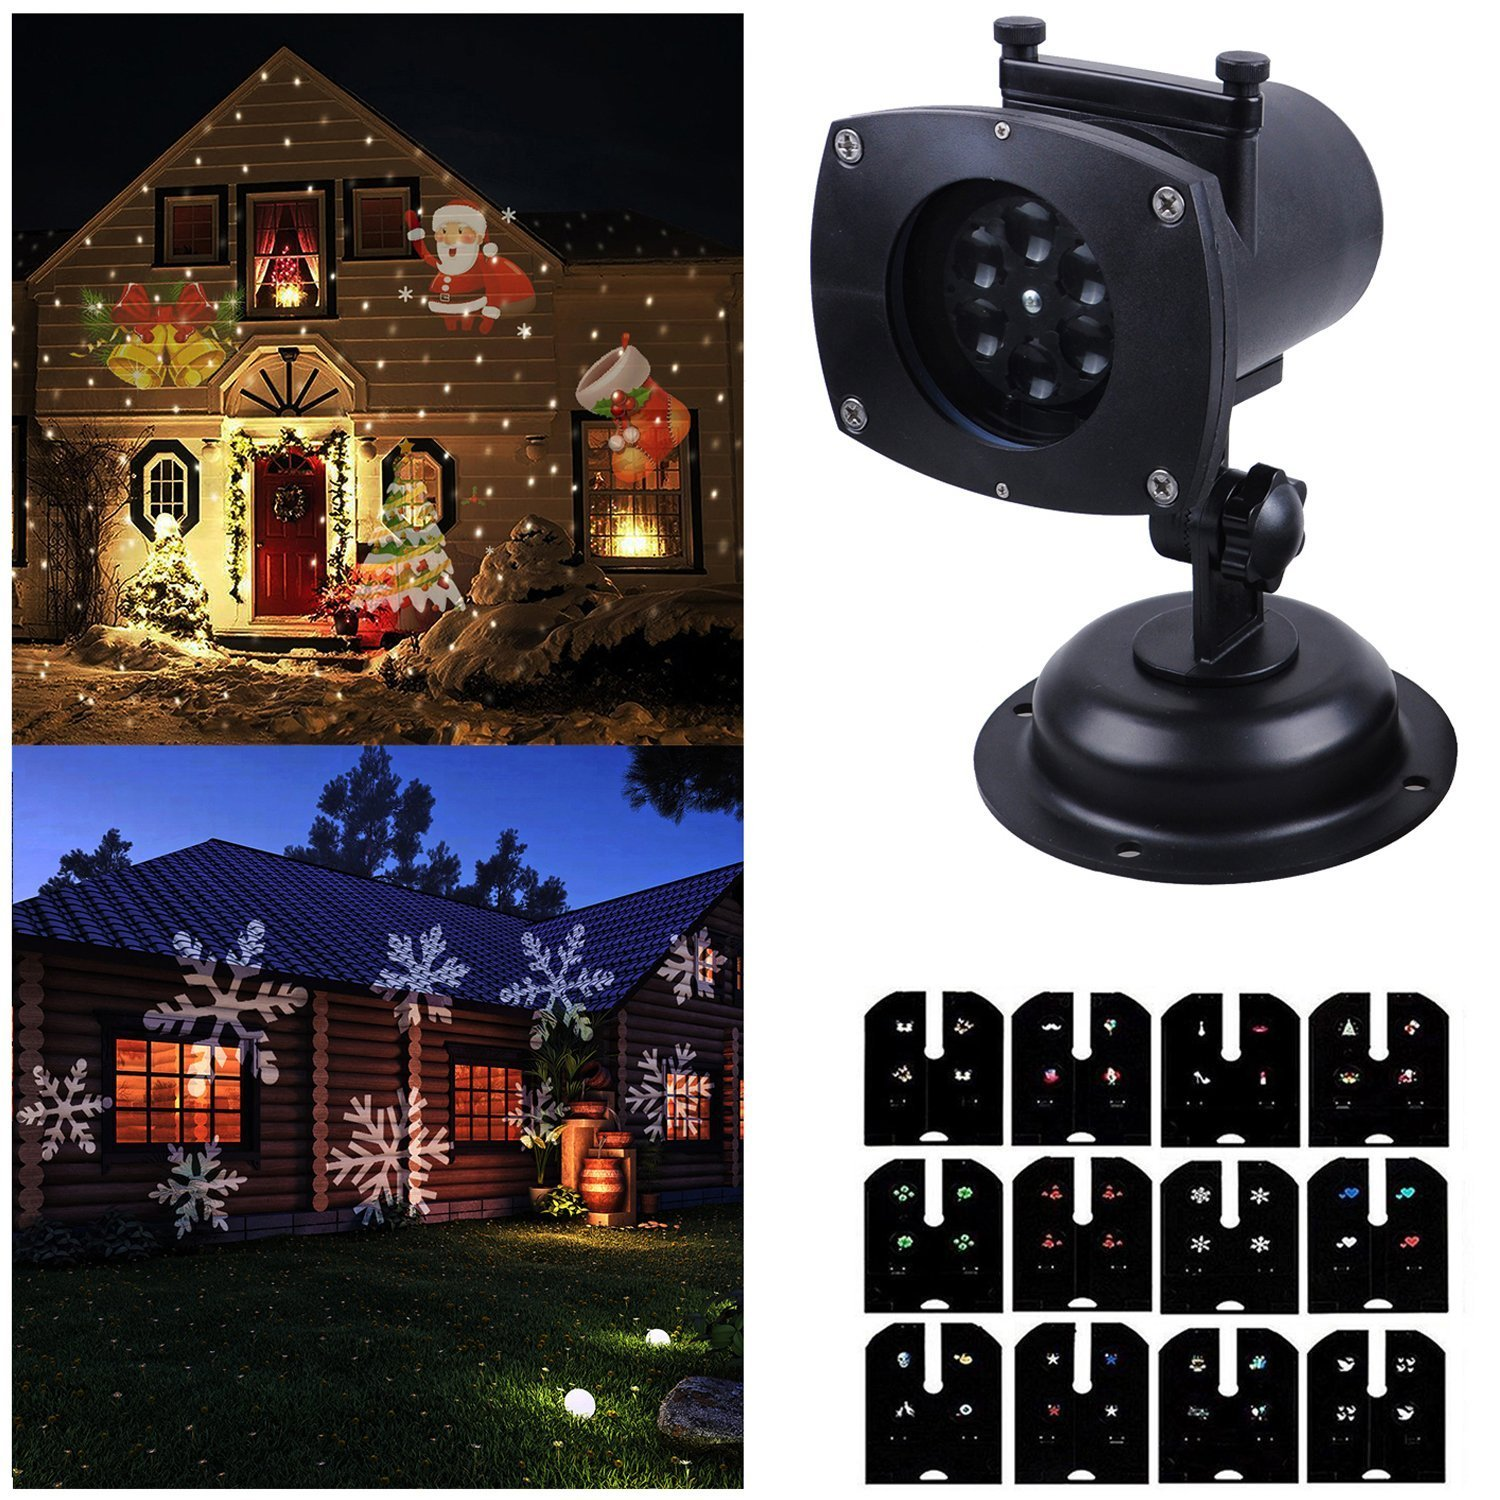 Ahyuan Christmas Decoration, 12 Mode Rotating Switchable Slides Projector Spotlight, Waterproof LED Landscape Light Outdoor Garden Wall,